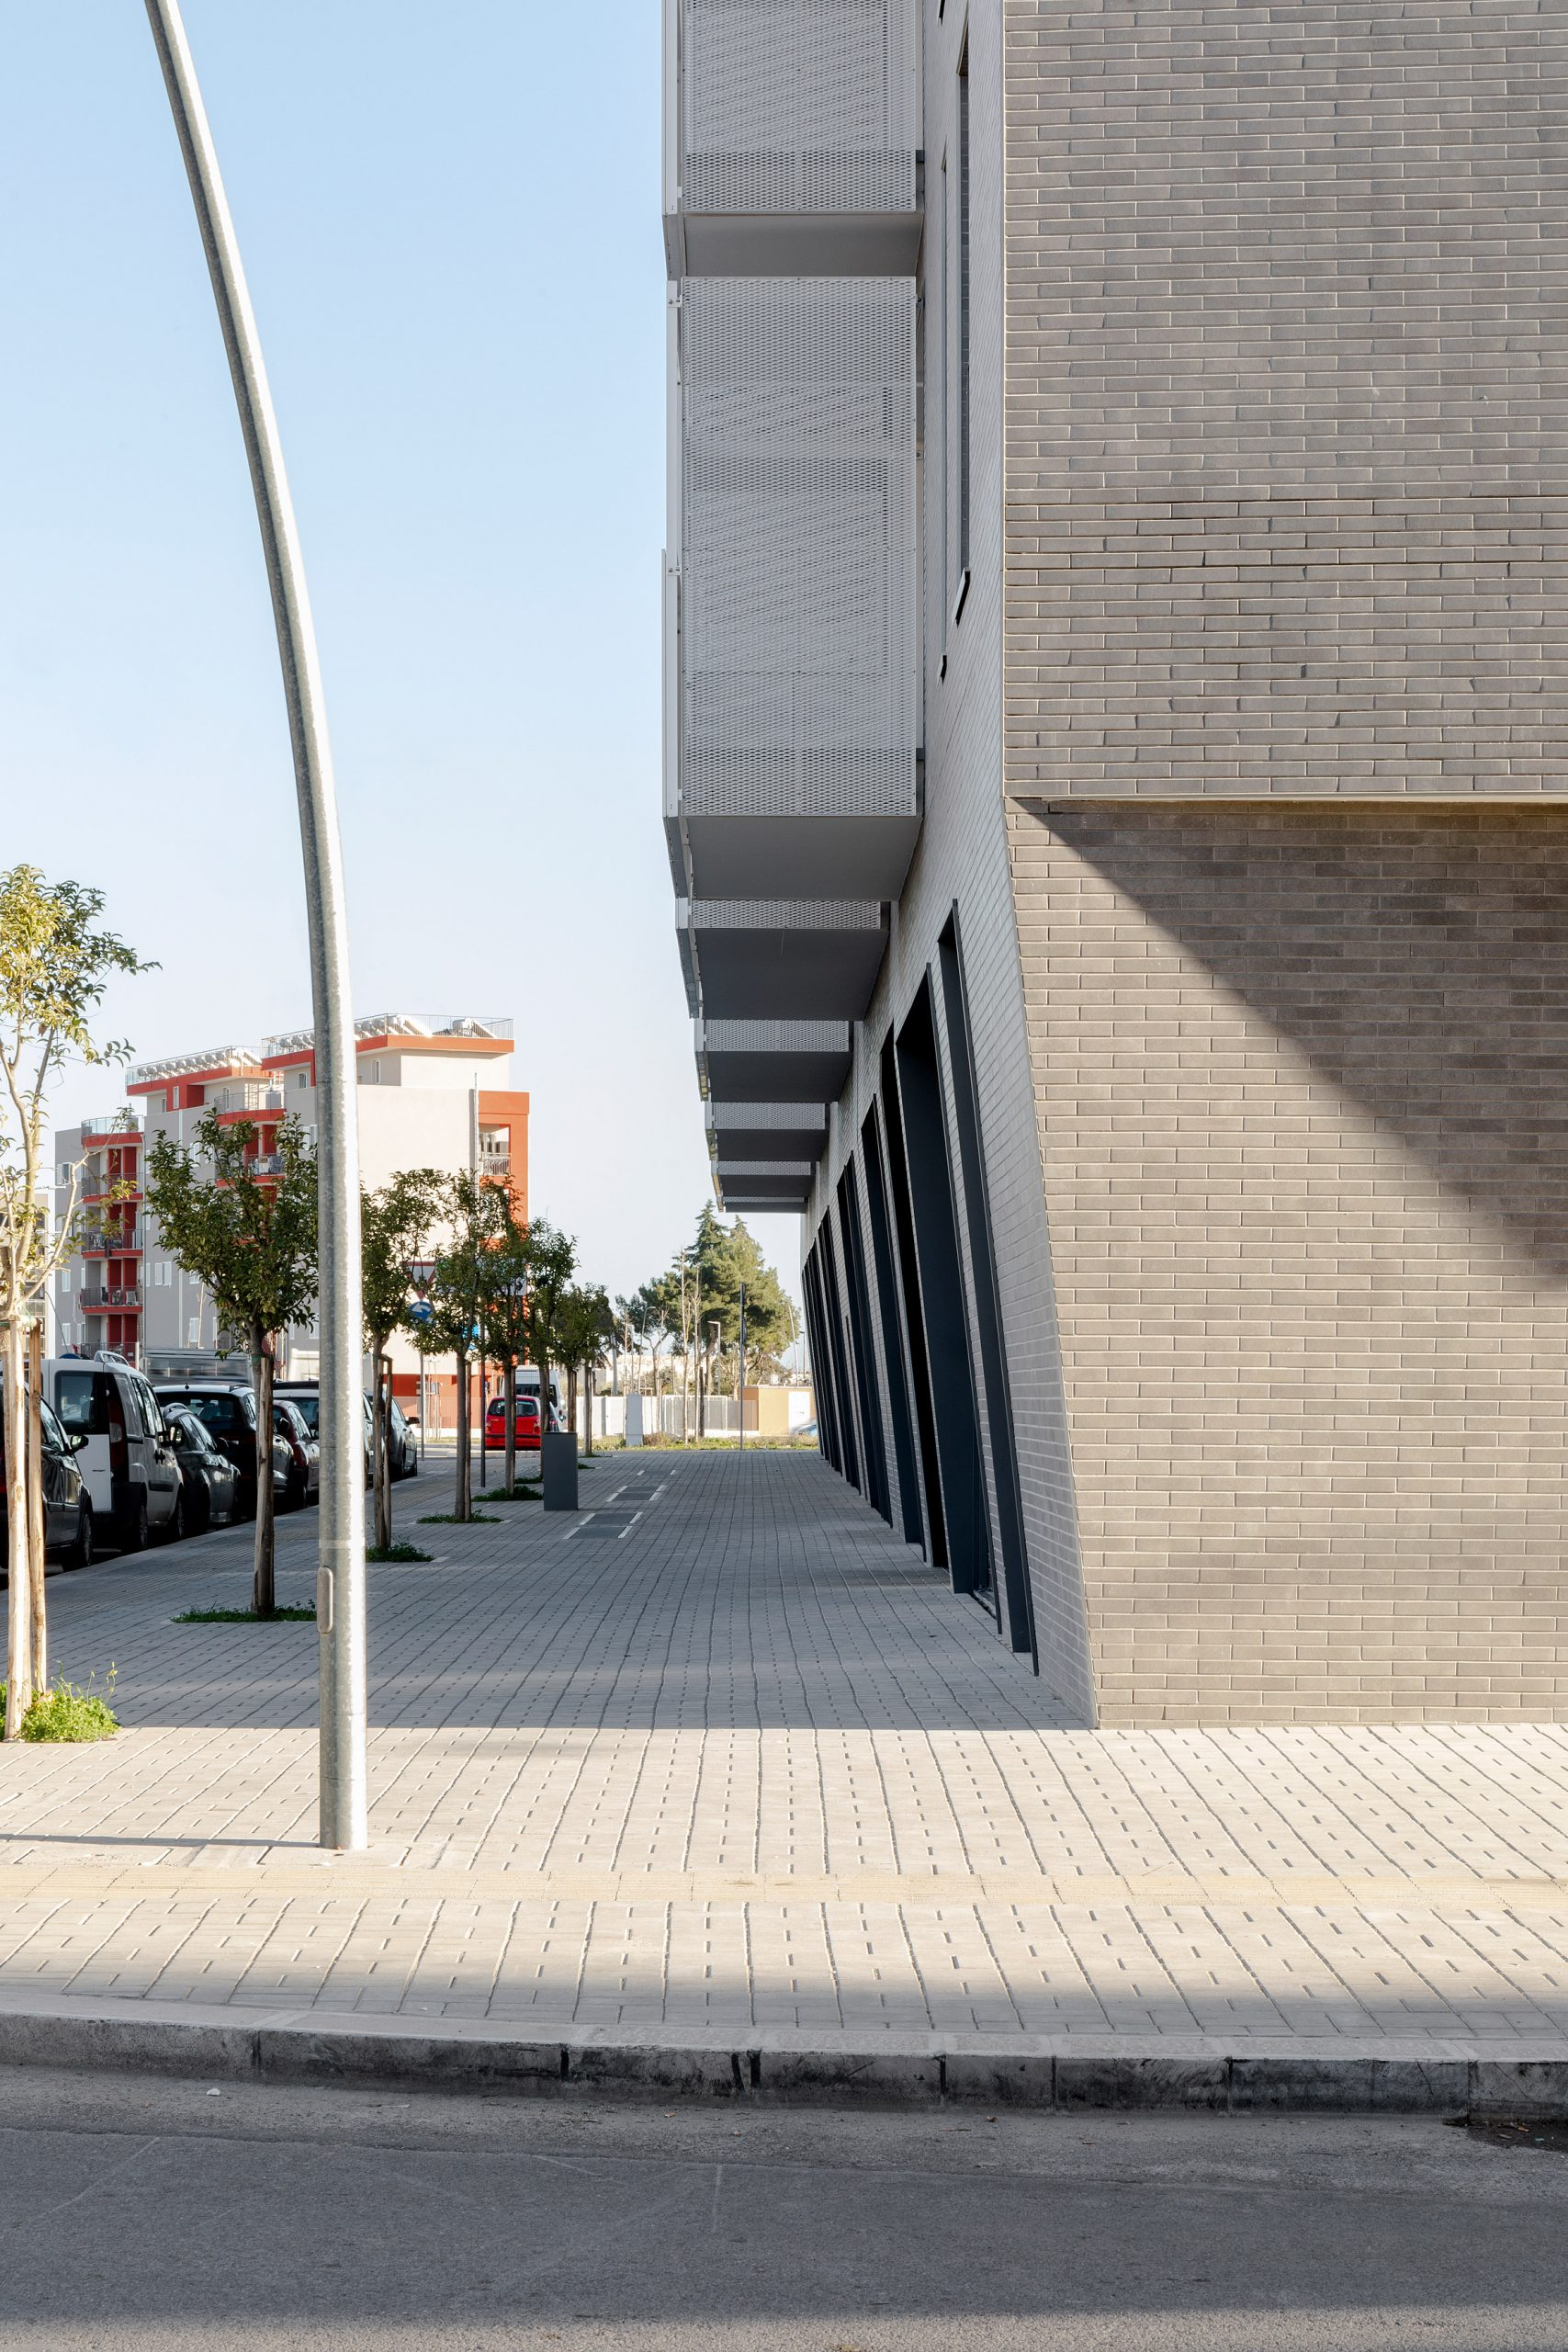 Protruding balconies hang over the street by Alvisi Kirimoto